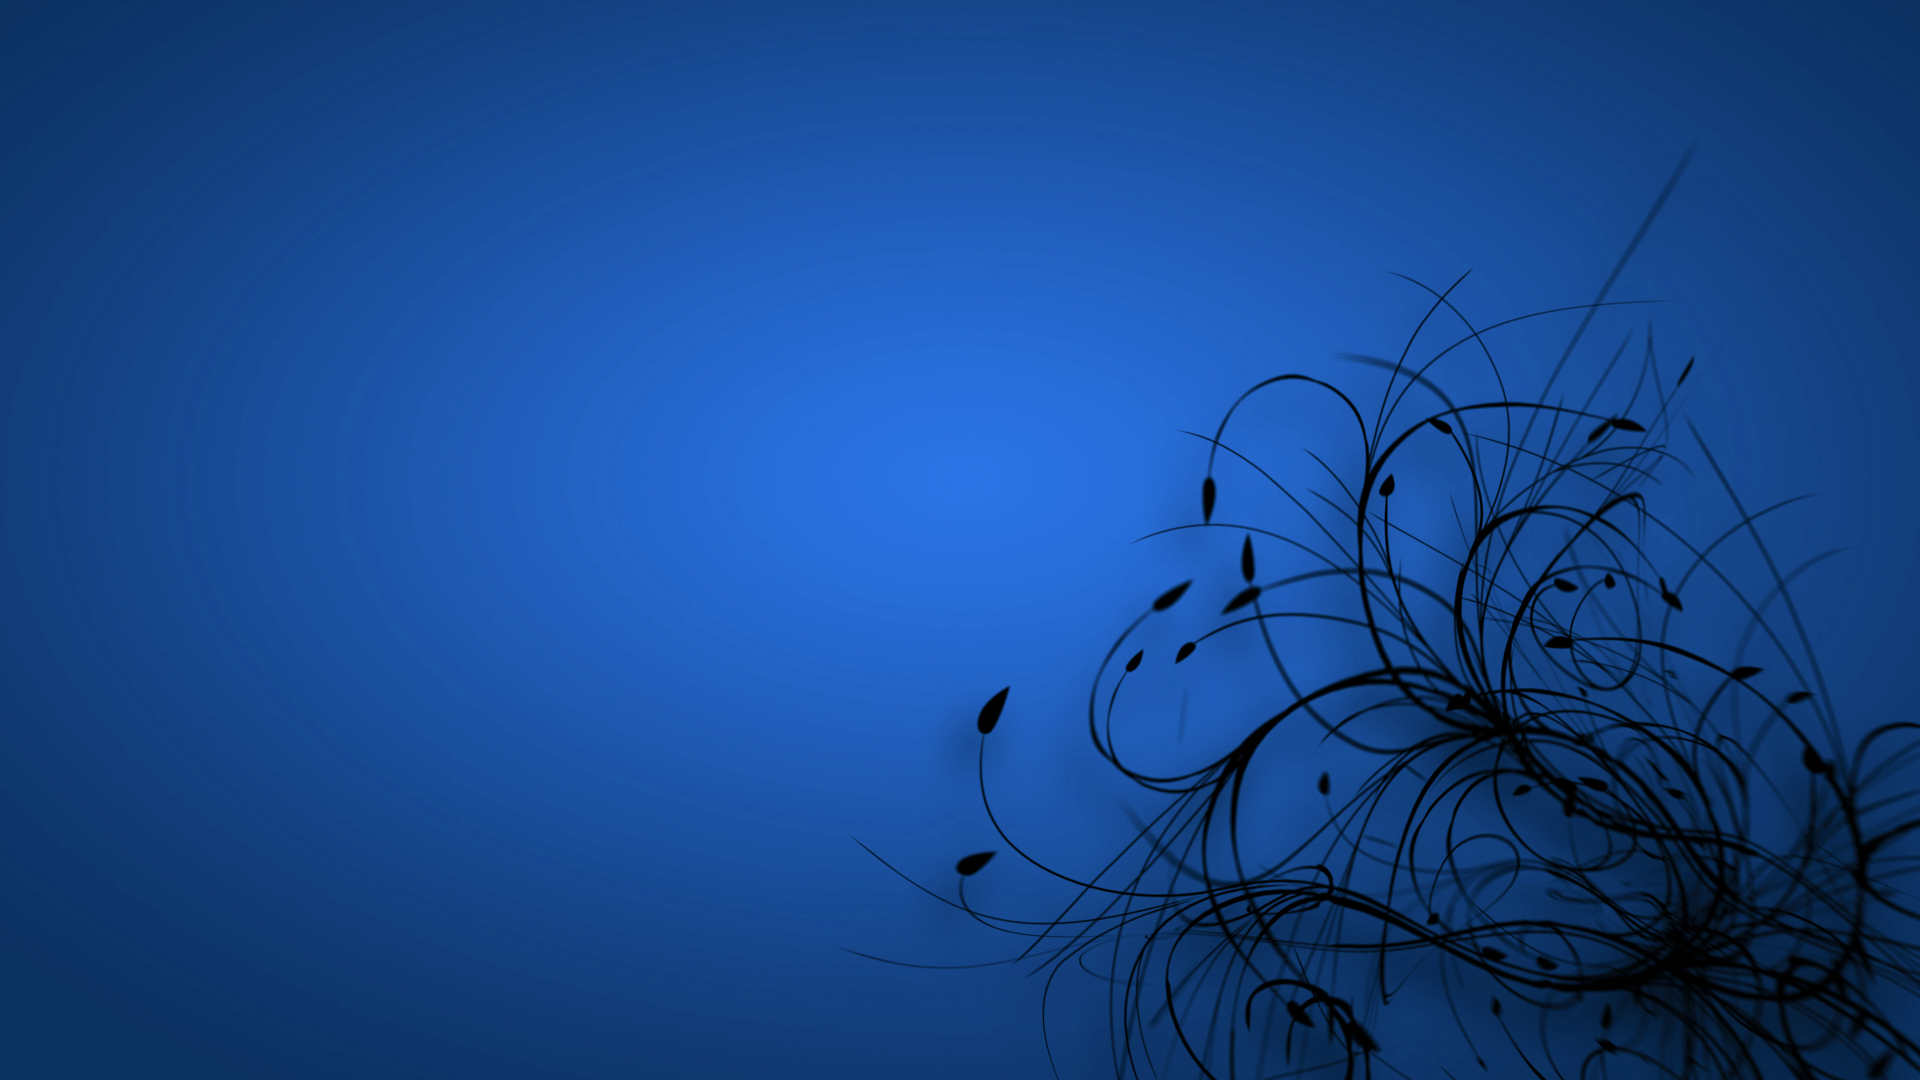 Blue Floral Growth Myspace Backgrounds